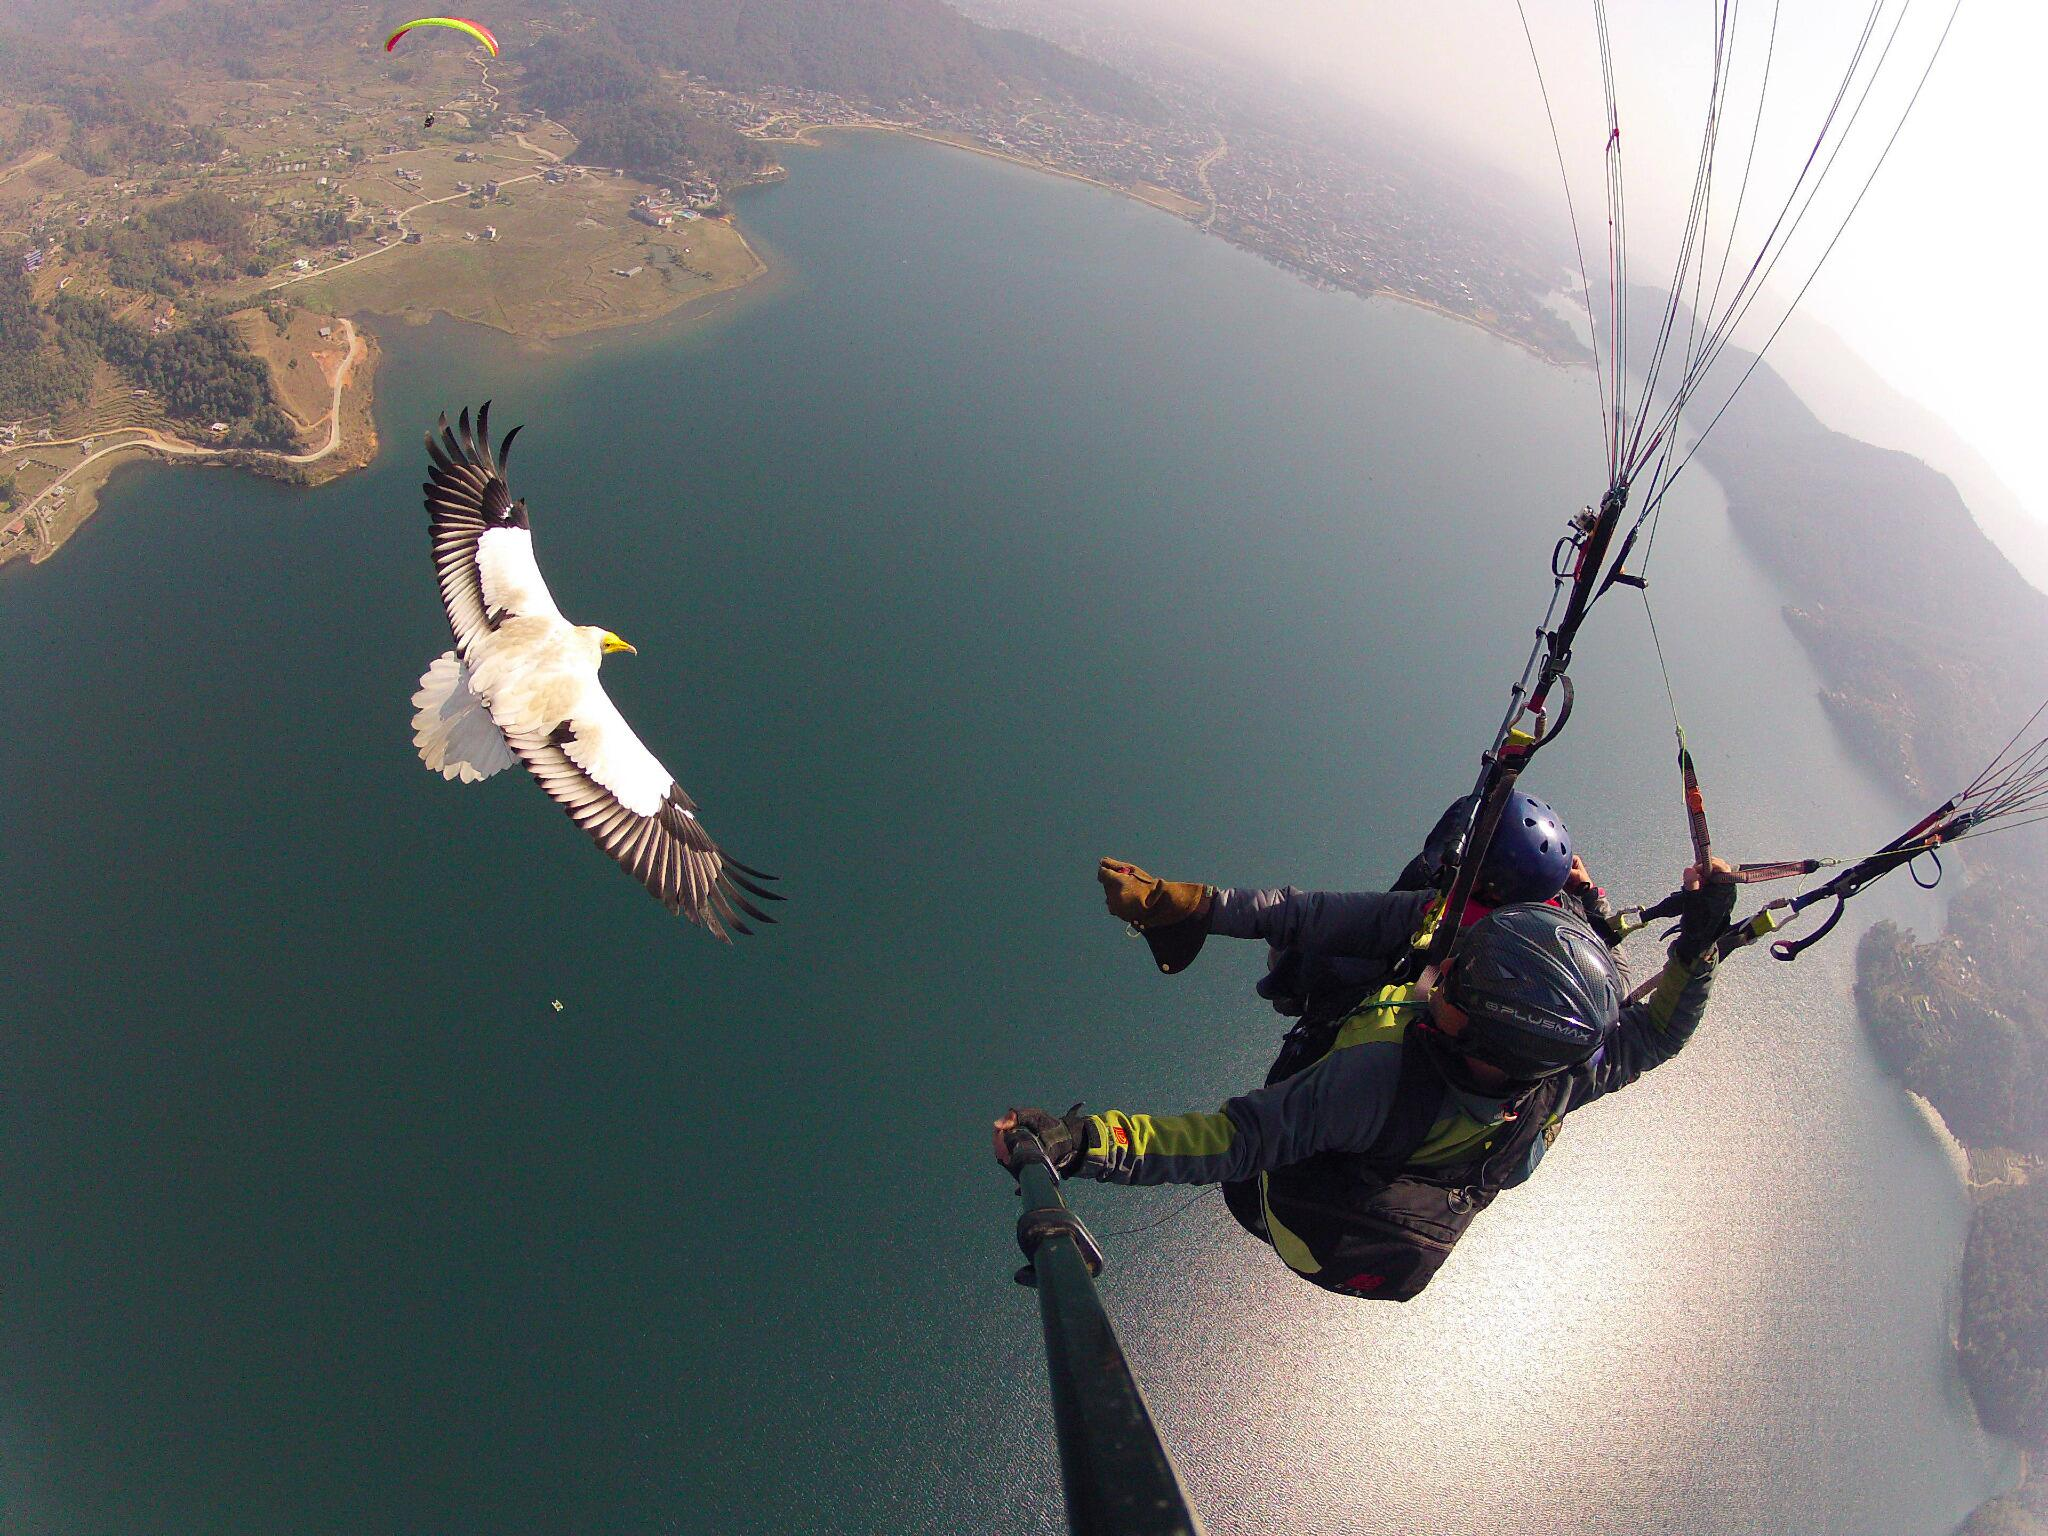 Photo of the Day! @parahawking in Nepal. As cool as it sounds. http://t.co/T0EWsq50Fa